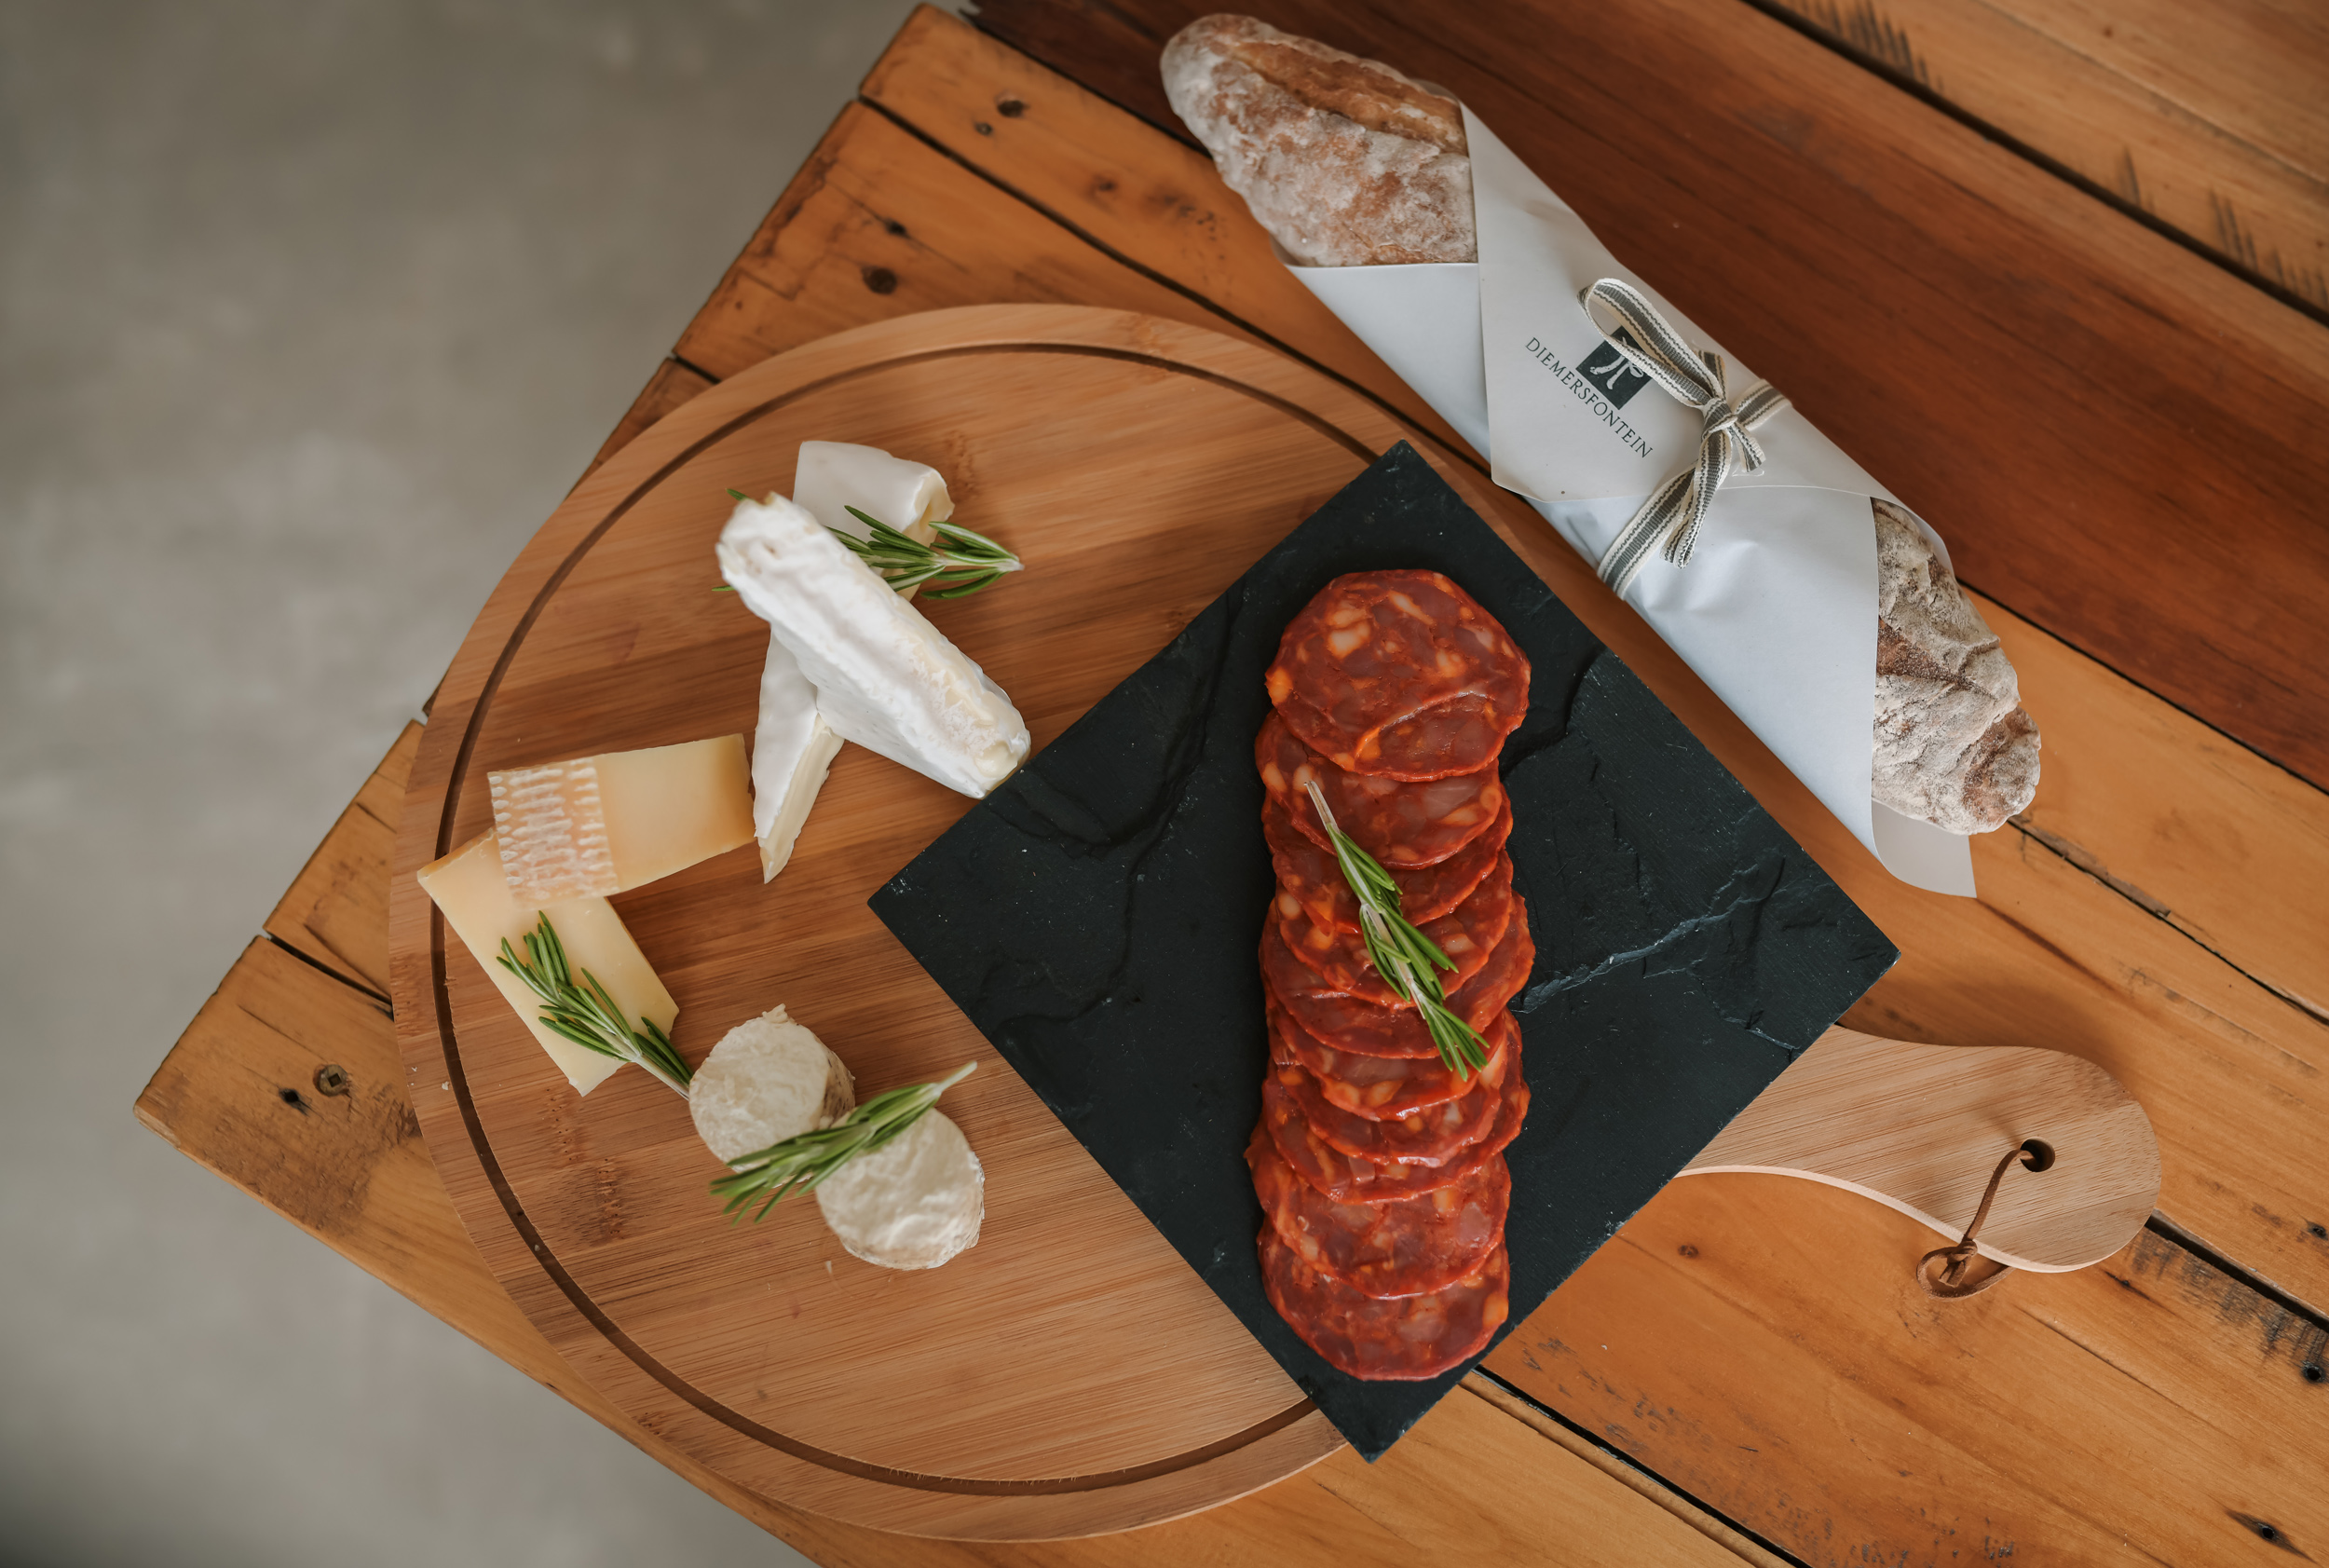 PROE 2 Family And Pet friendly Deli With Picnic Offerings Opens At Diemersfontein